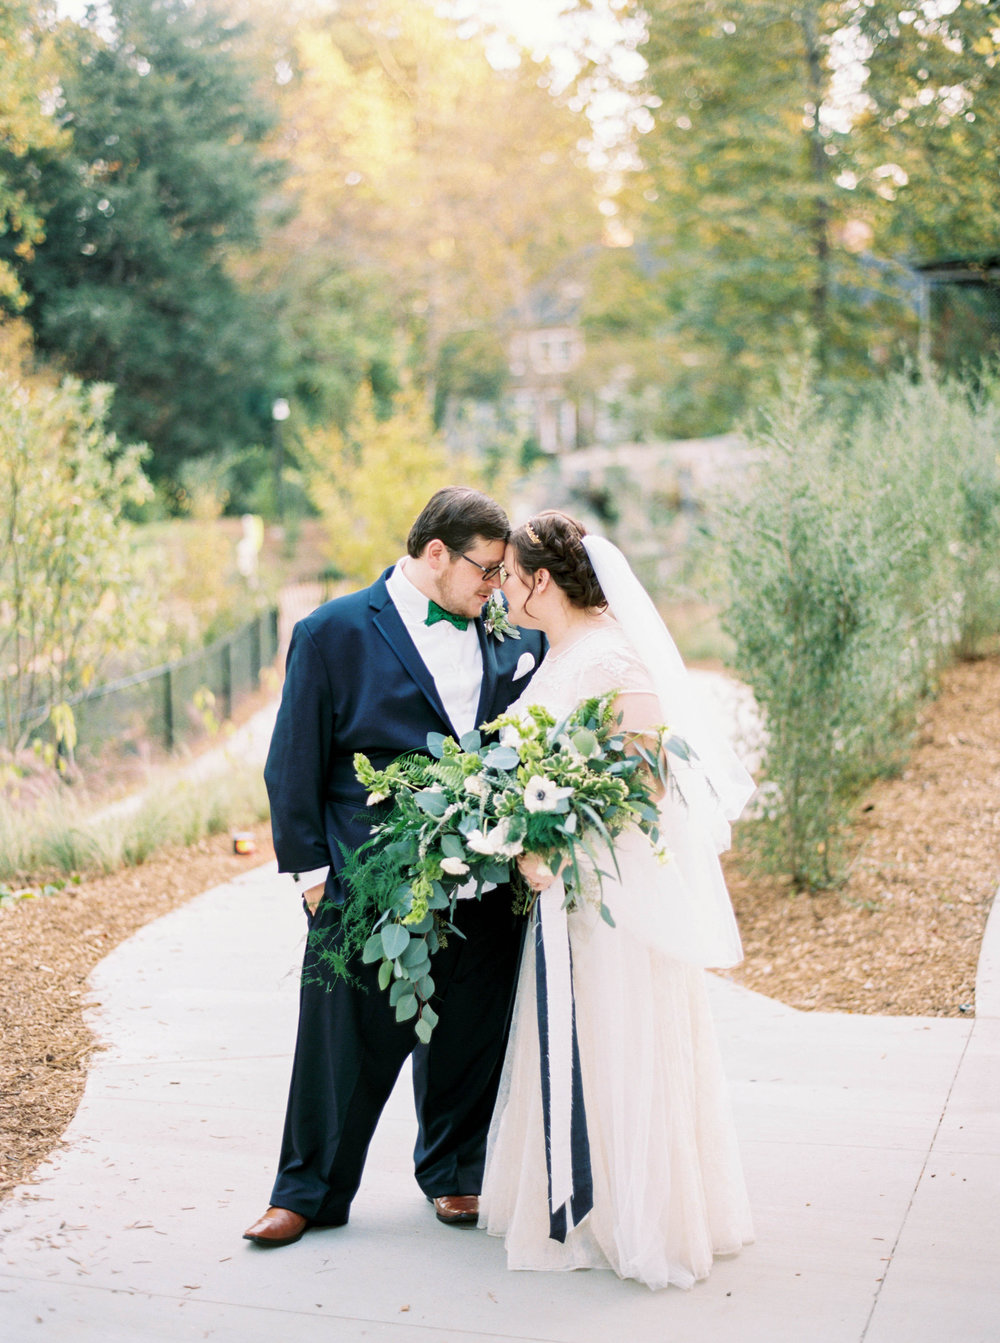 Dawn + Matthew | Fernbank Museum Wedding, Atlanta